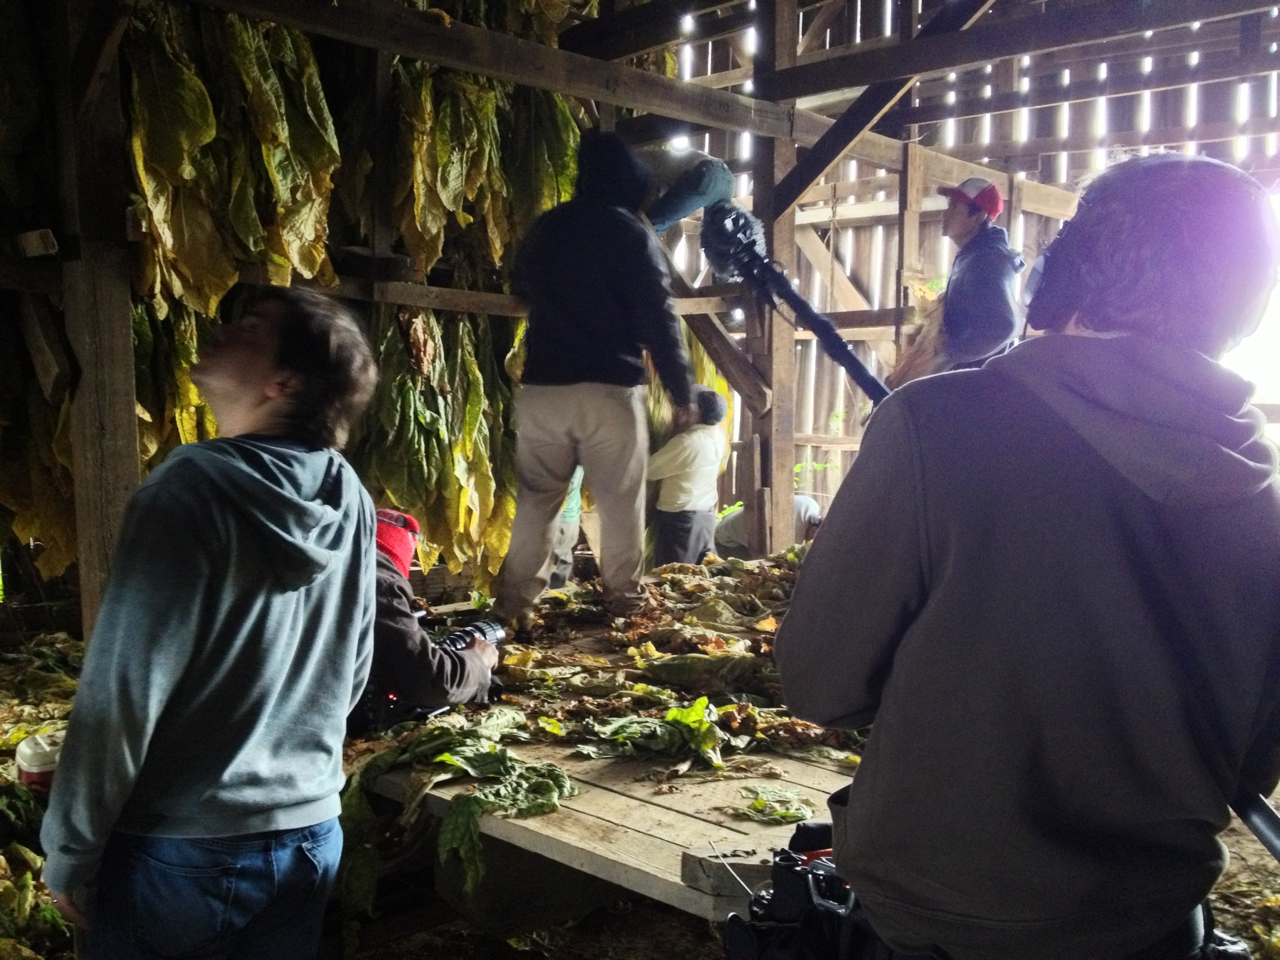 Laura snapped this picture of me, Lee and Justin while we were filming a crew hanging their tobacco in a barn.